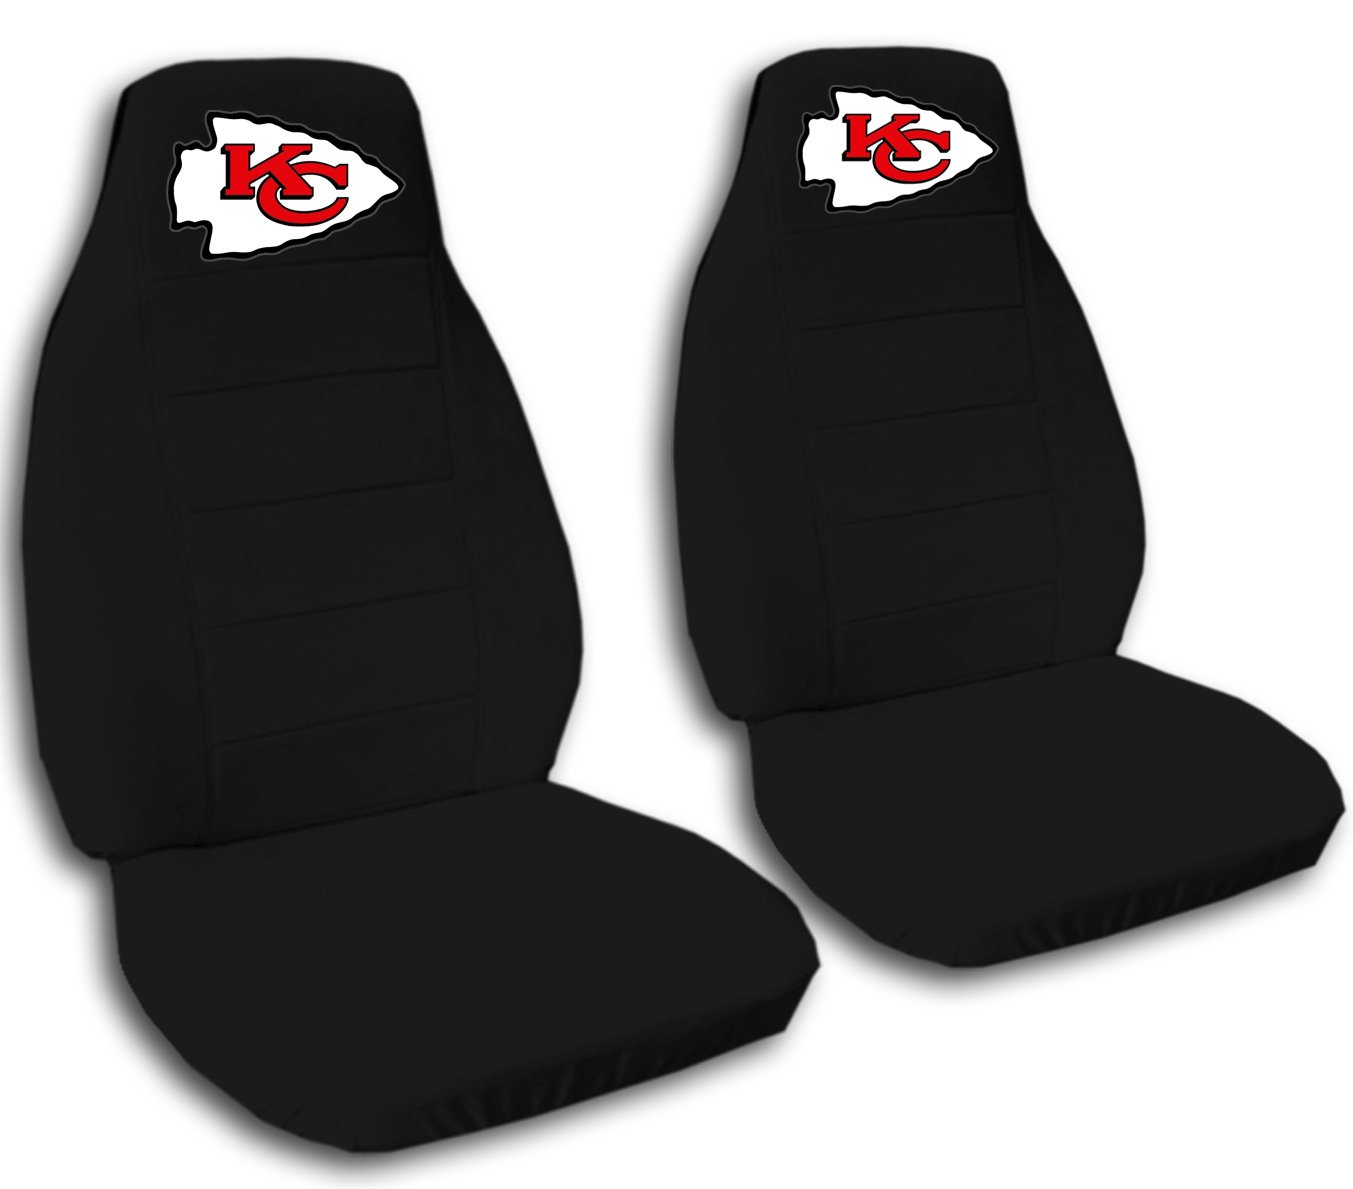 2 Black Kansas City seat covers for a 2007 to 2012 Chevrolet Silverado. Side airbag friendly.